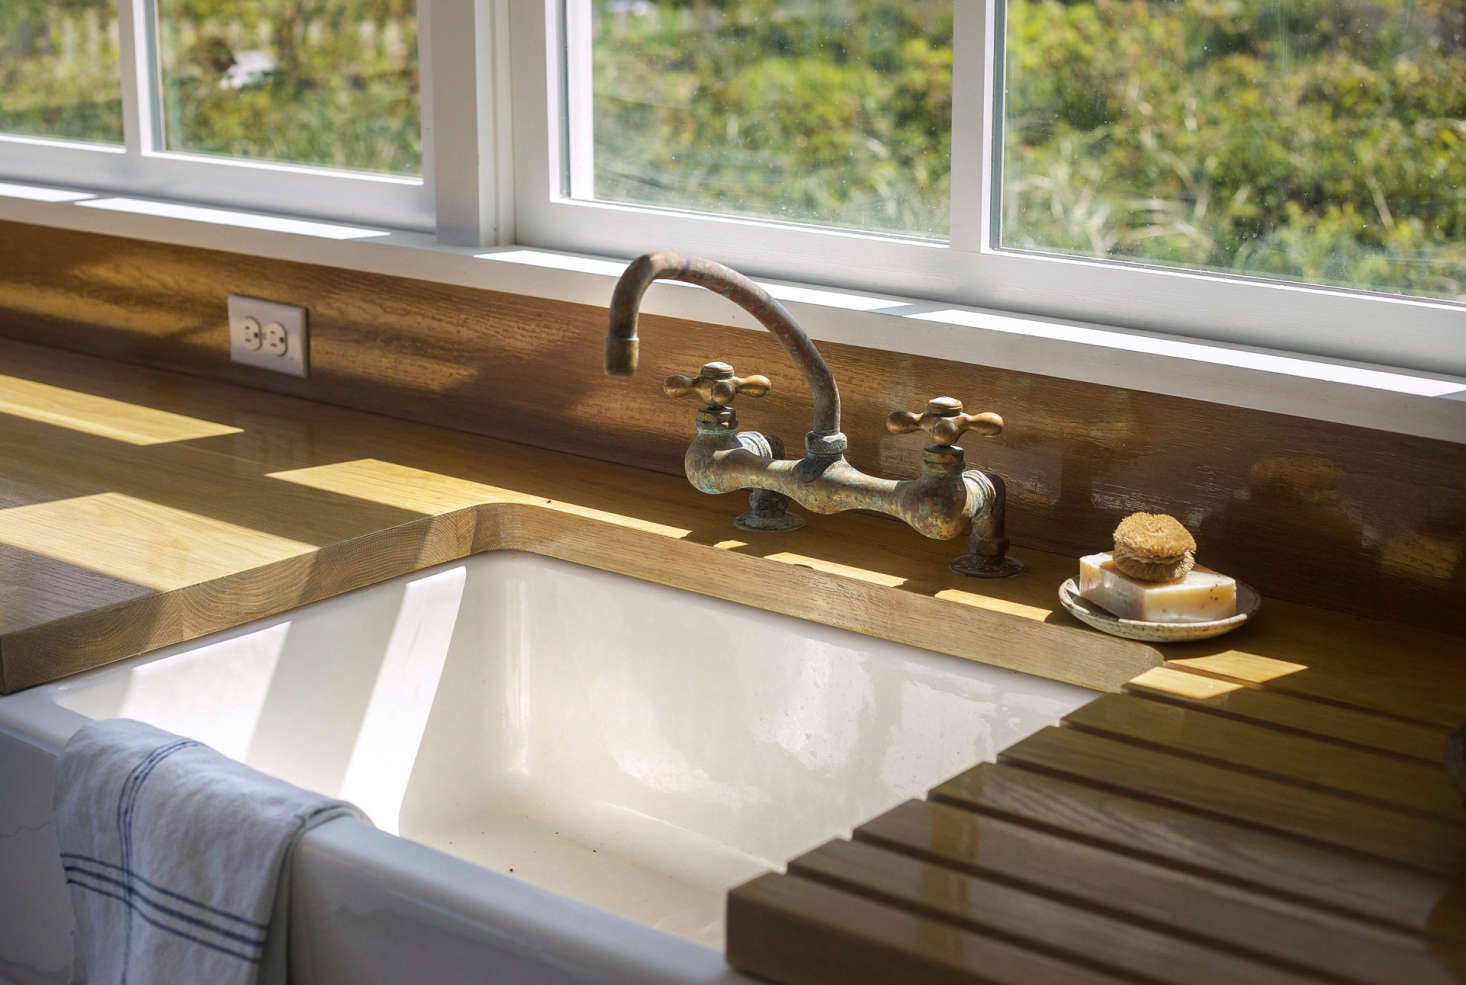 A deck-mounted utility Chicago faucet was stripped down to reveal the brass construction and paired with a ceramic farmhouse sink. (A similar sink is Shaw's 30-Inch Original 30 Fireclay Apron-Front Sink from Rohl. For more, see our post Easy Pieces: White Kitchen Farmhouse Sinks.)